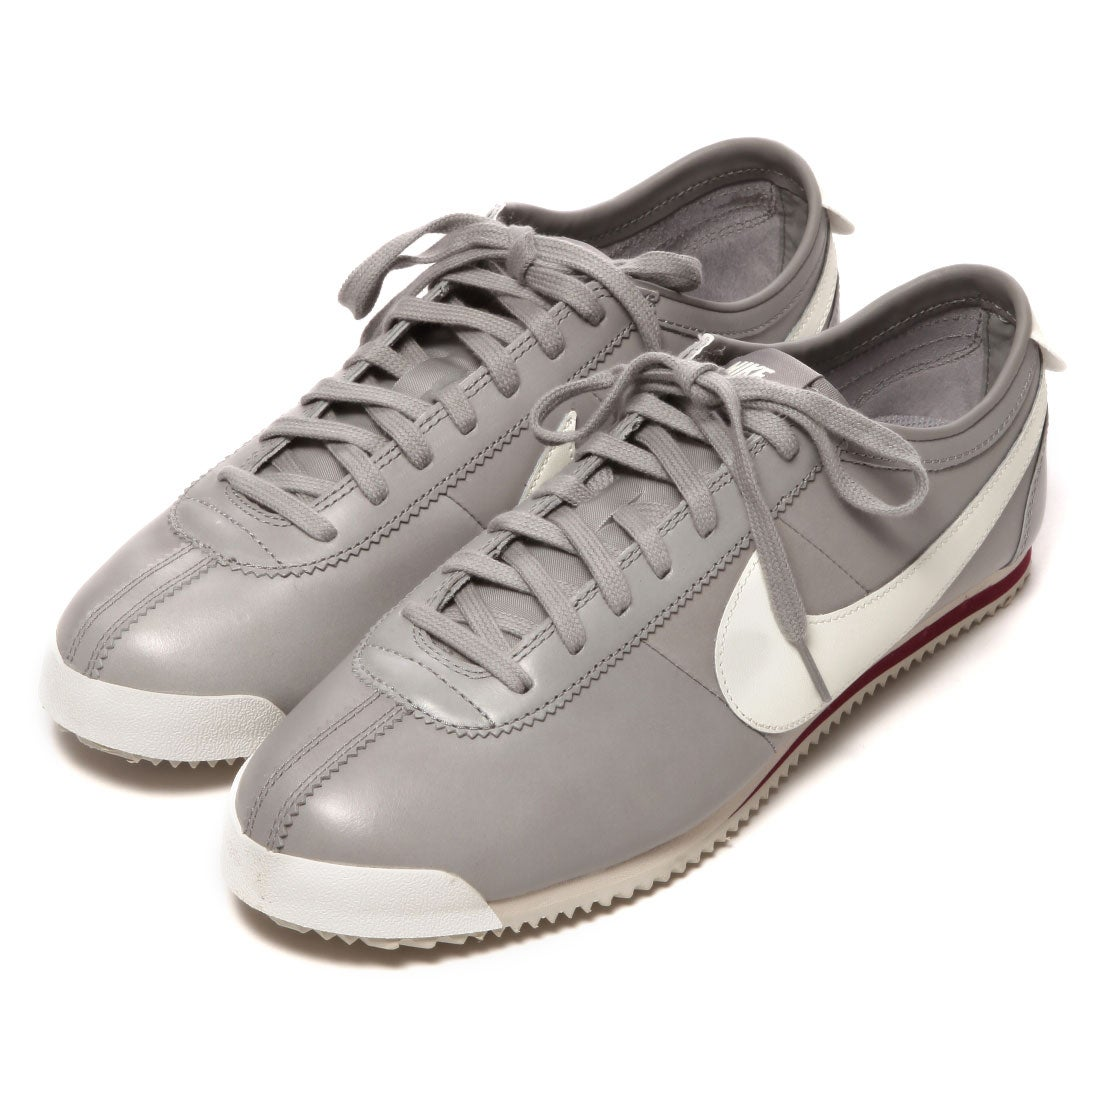 new arrival eb81a 63b0e ナイキ NIKE CHAPTER CORTEZ CLASSIC OG LEATHER(GREY WHITE) -アウトレット通販 ロコレット  (LOCOLET)